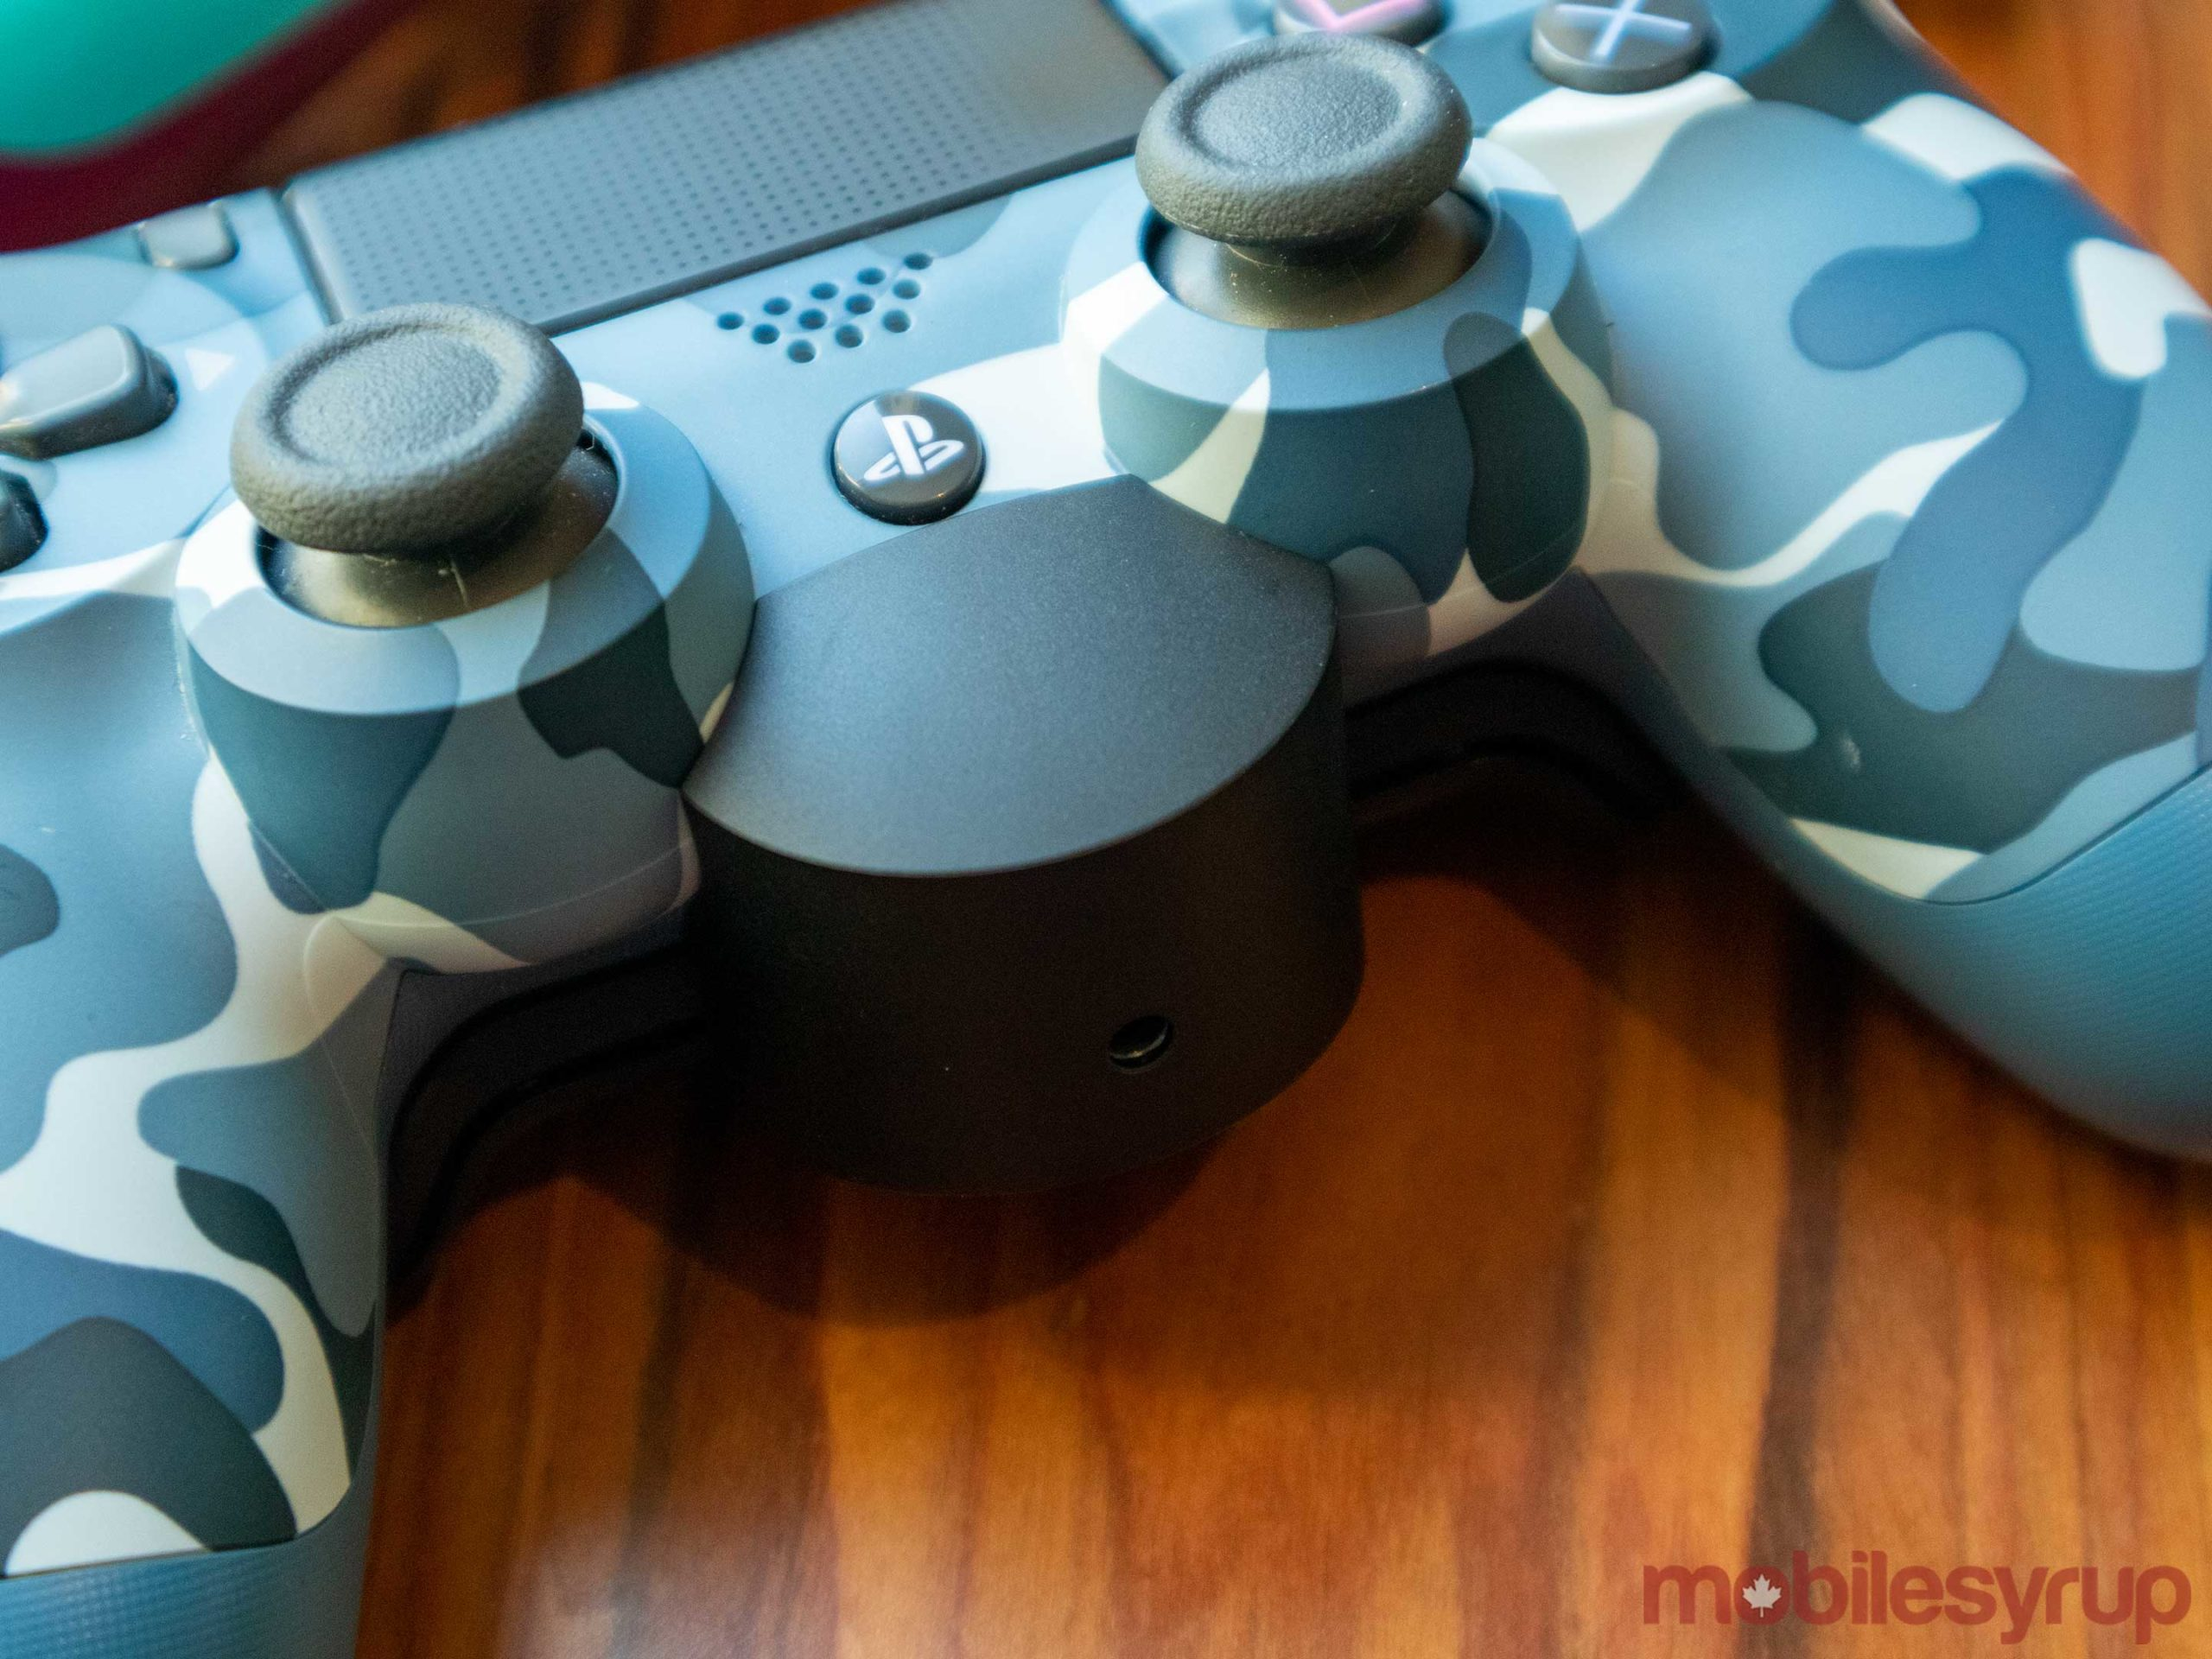 PlayStation 4 Back Button